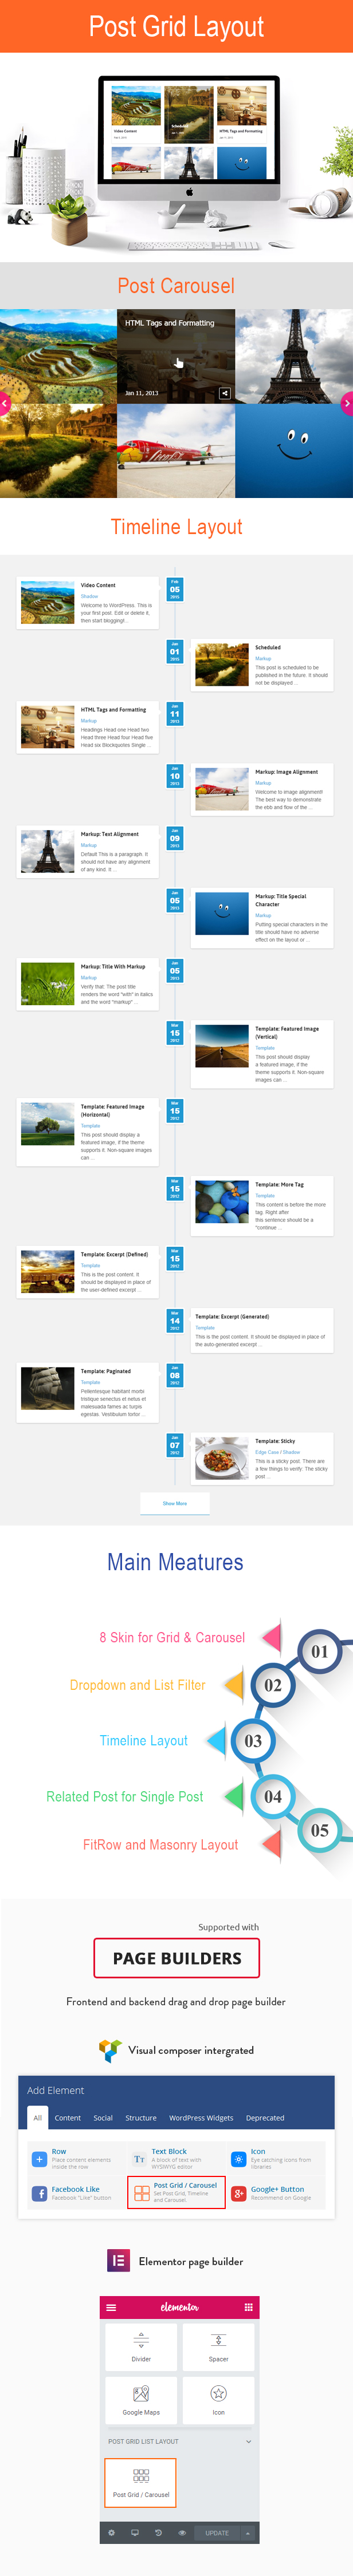 Wordpress Post Grid / List / Timeline Layout Con Carrusel y Post Relacionado